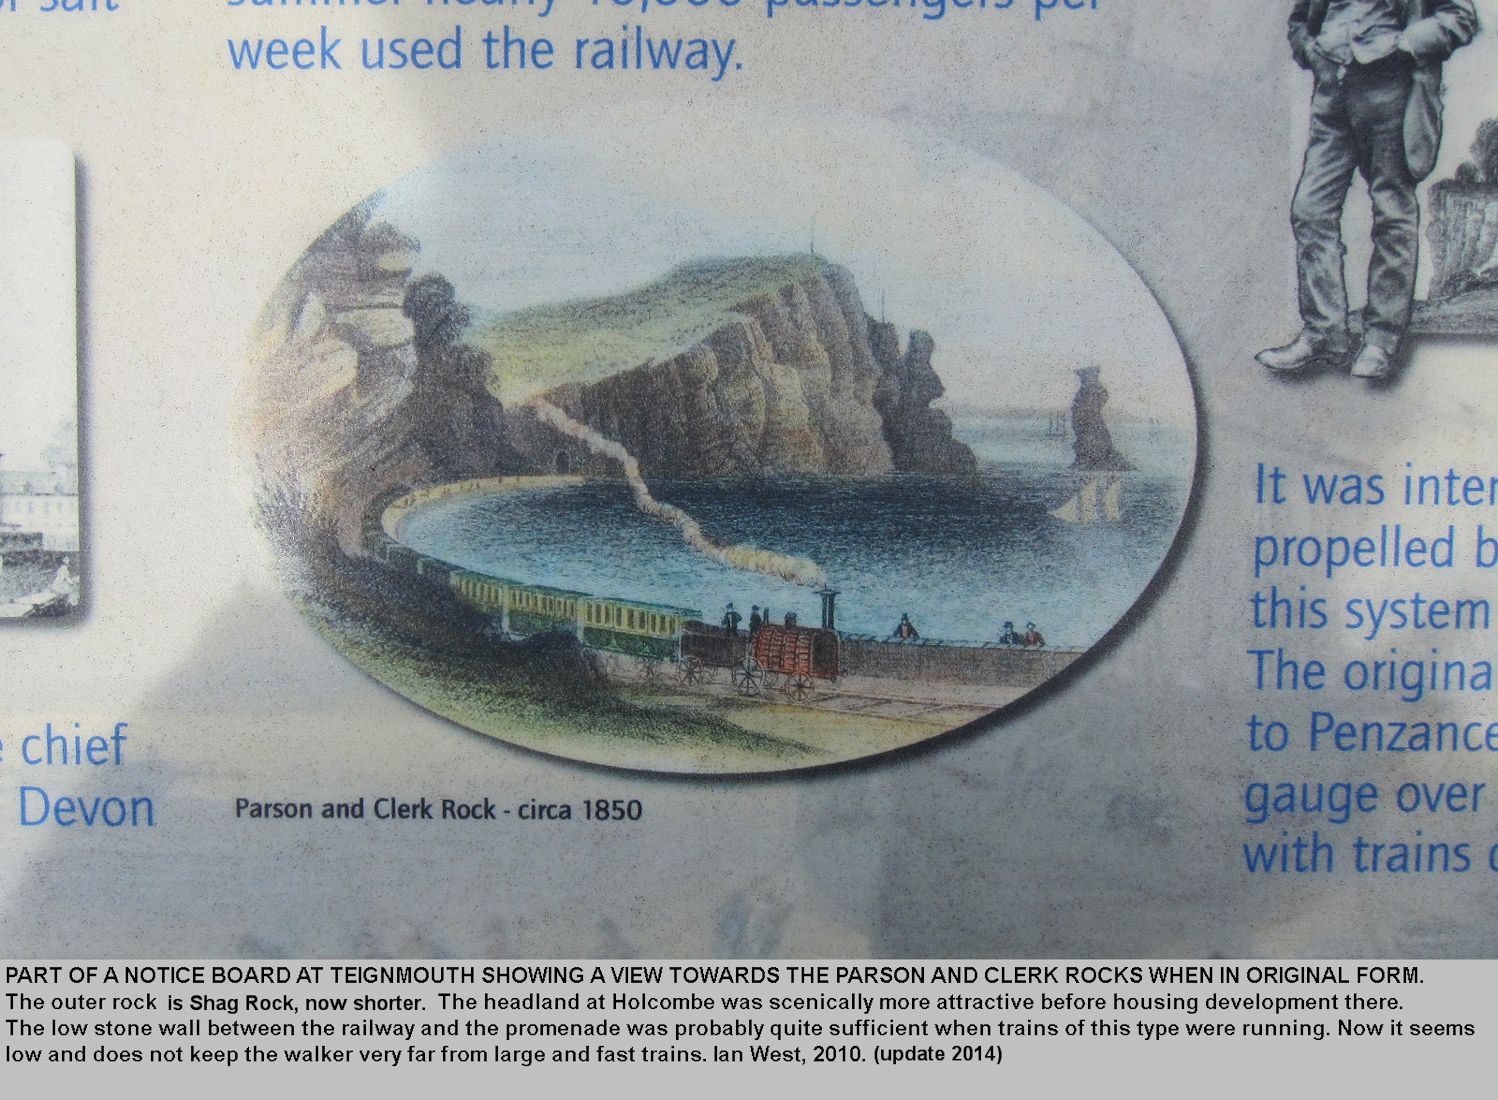 A notice with an image of the old railway at Teignmouth, Devon, showing the view towards Parson and Clerk Rock in about 1850, and with Shag Rock then taller